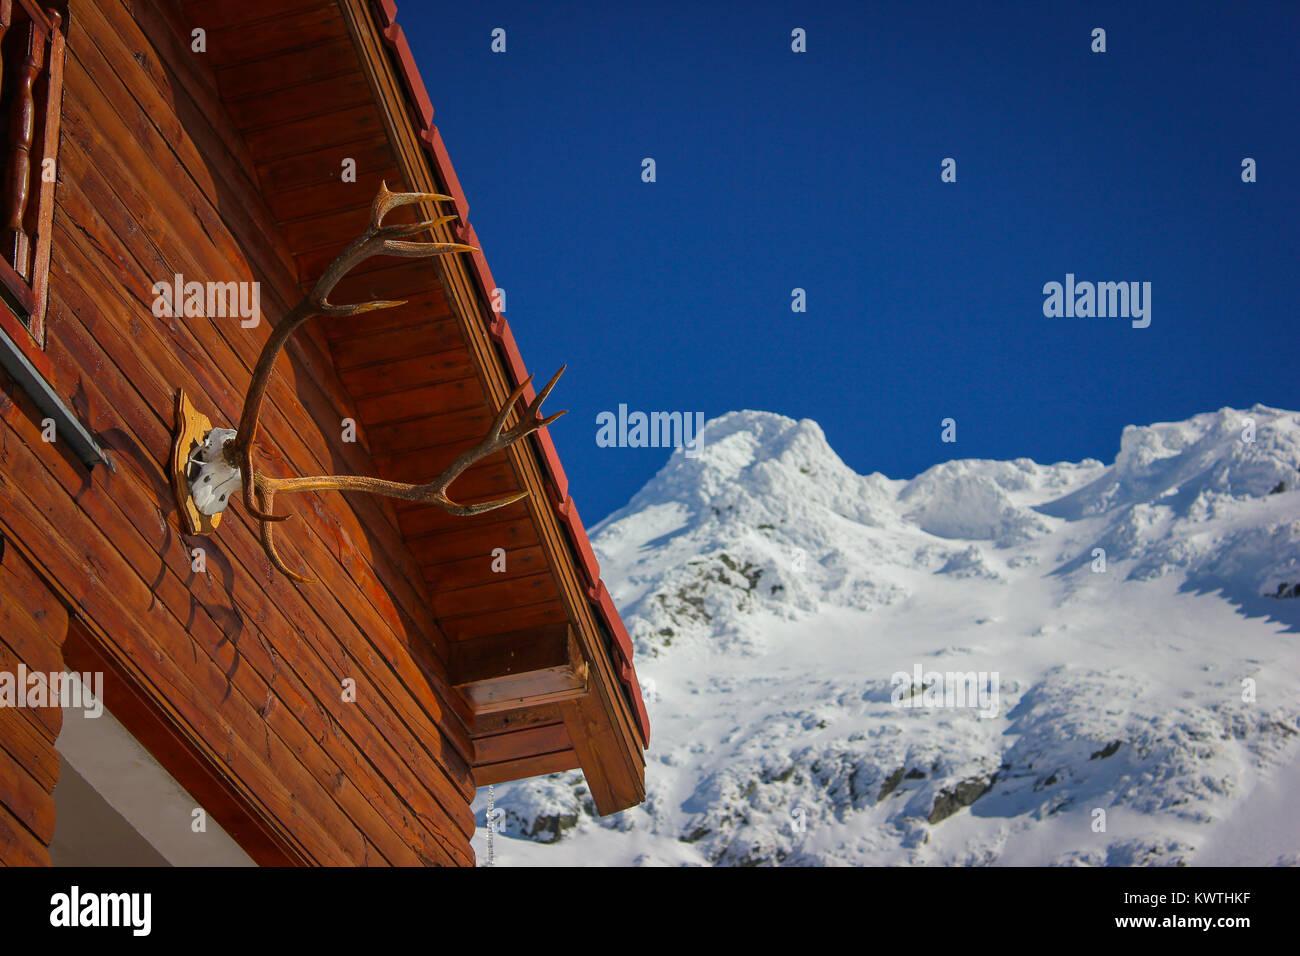 Alpine winter landscape with deer horns hunting trophy on a cabin at Balea Lake and Fagaras Mountains covered with Stock Photo